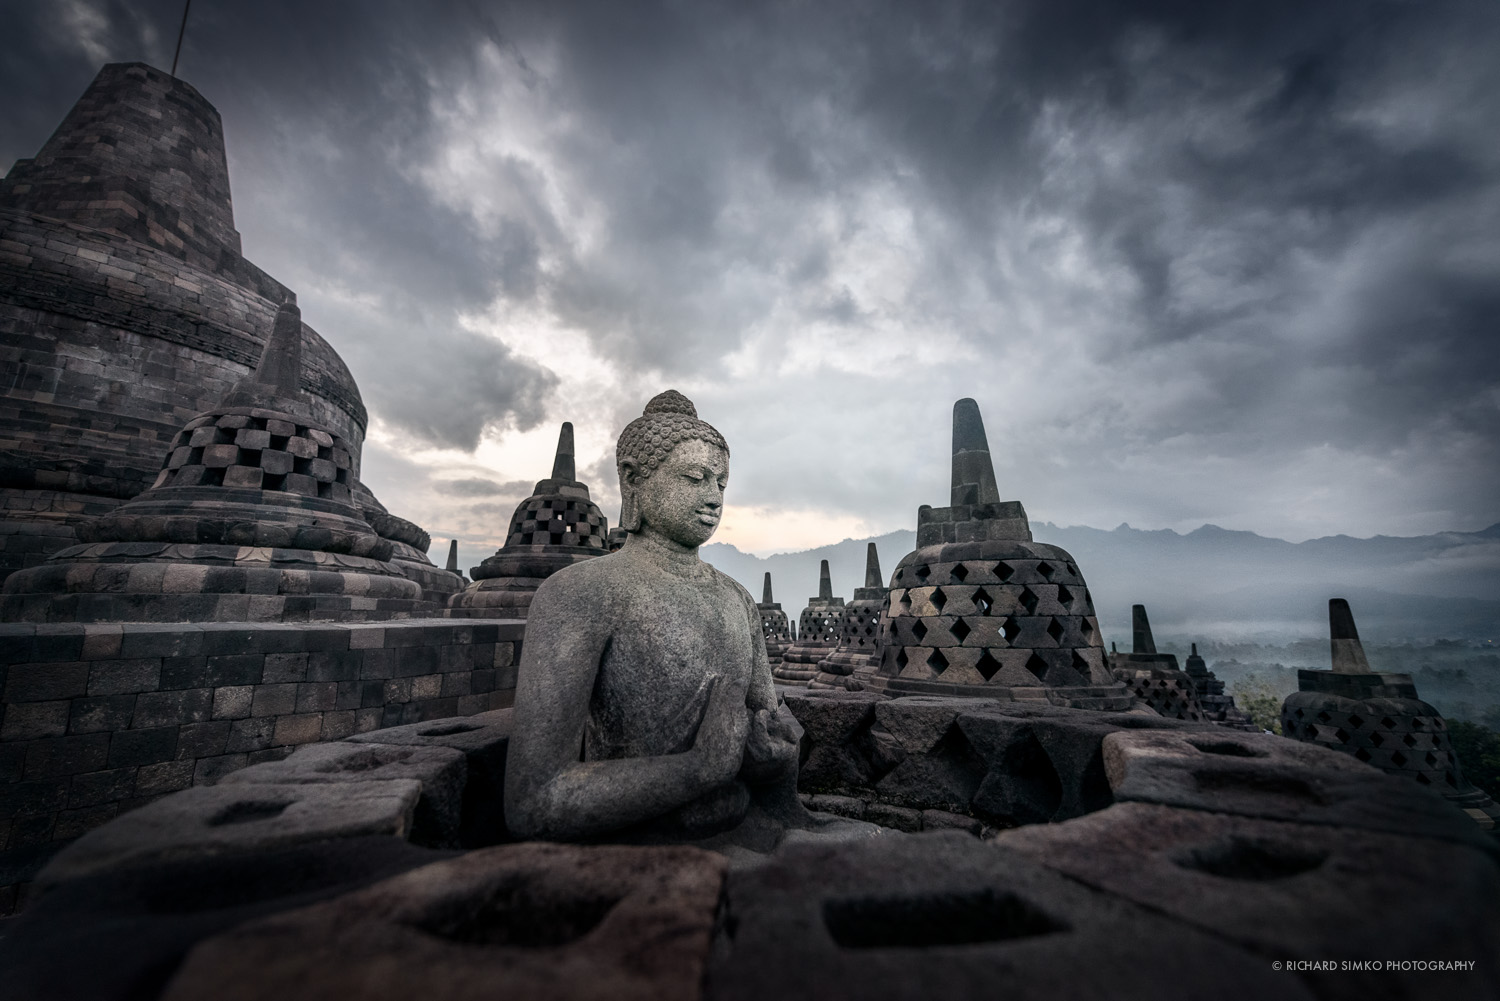 Borobudur sunrise is the main attraction but there is lot more to photograph.